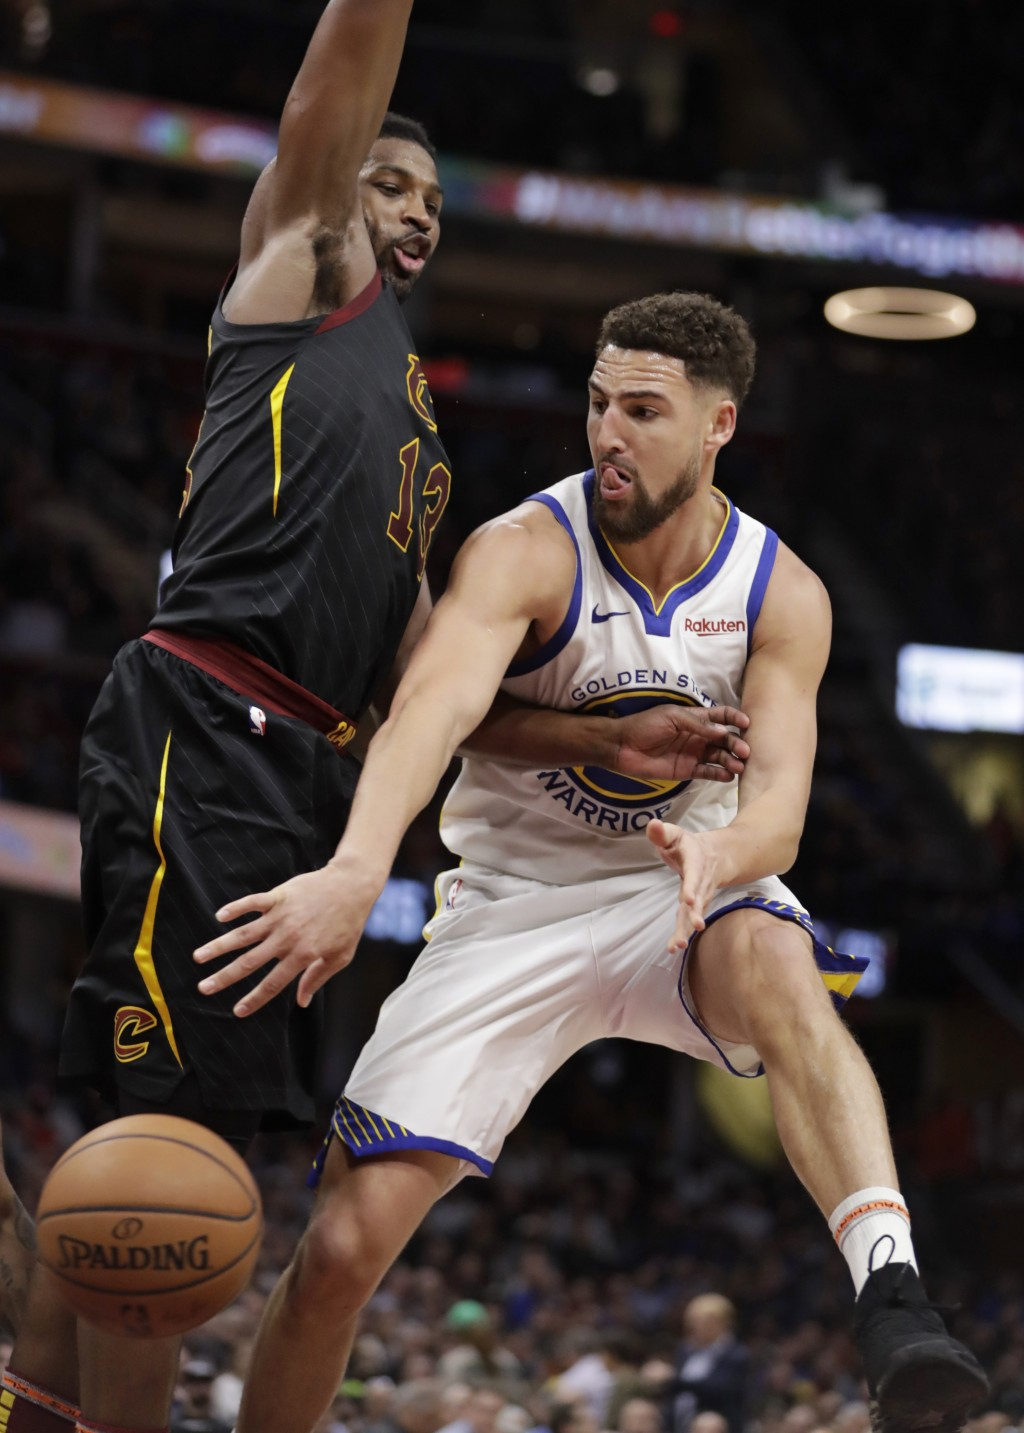 Golden State Warriors' Klay Thompson, right, passes against Cleveland Cavaliers' Tristan Thompson in the second half of an NBA basketball game, Wednes